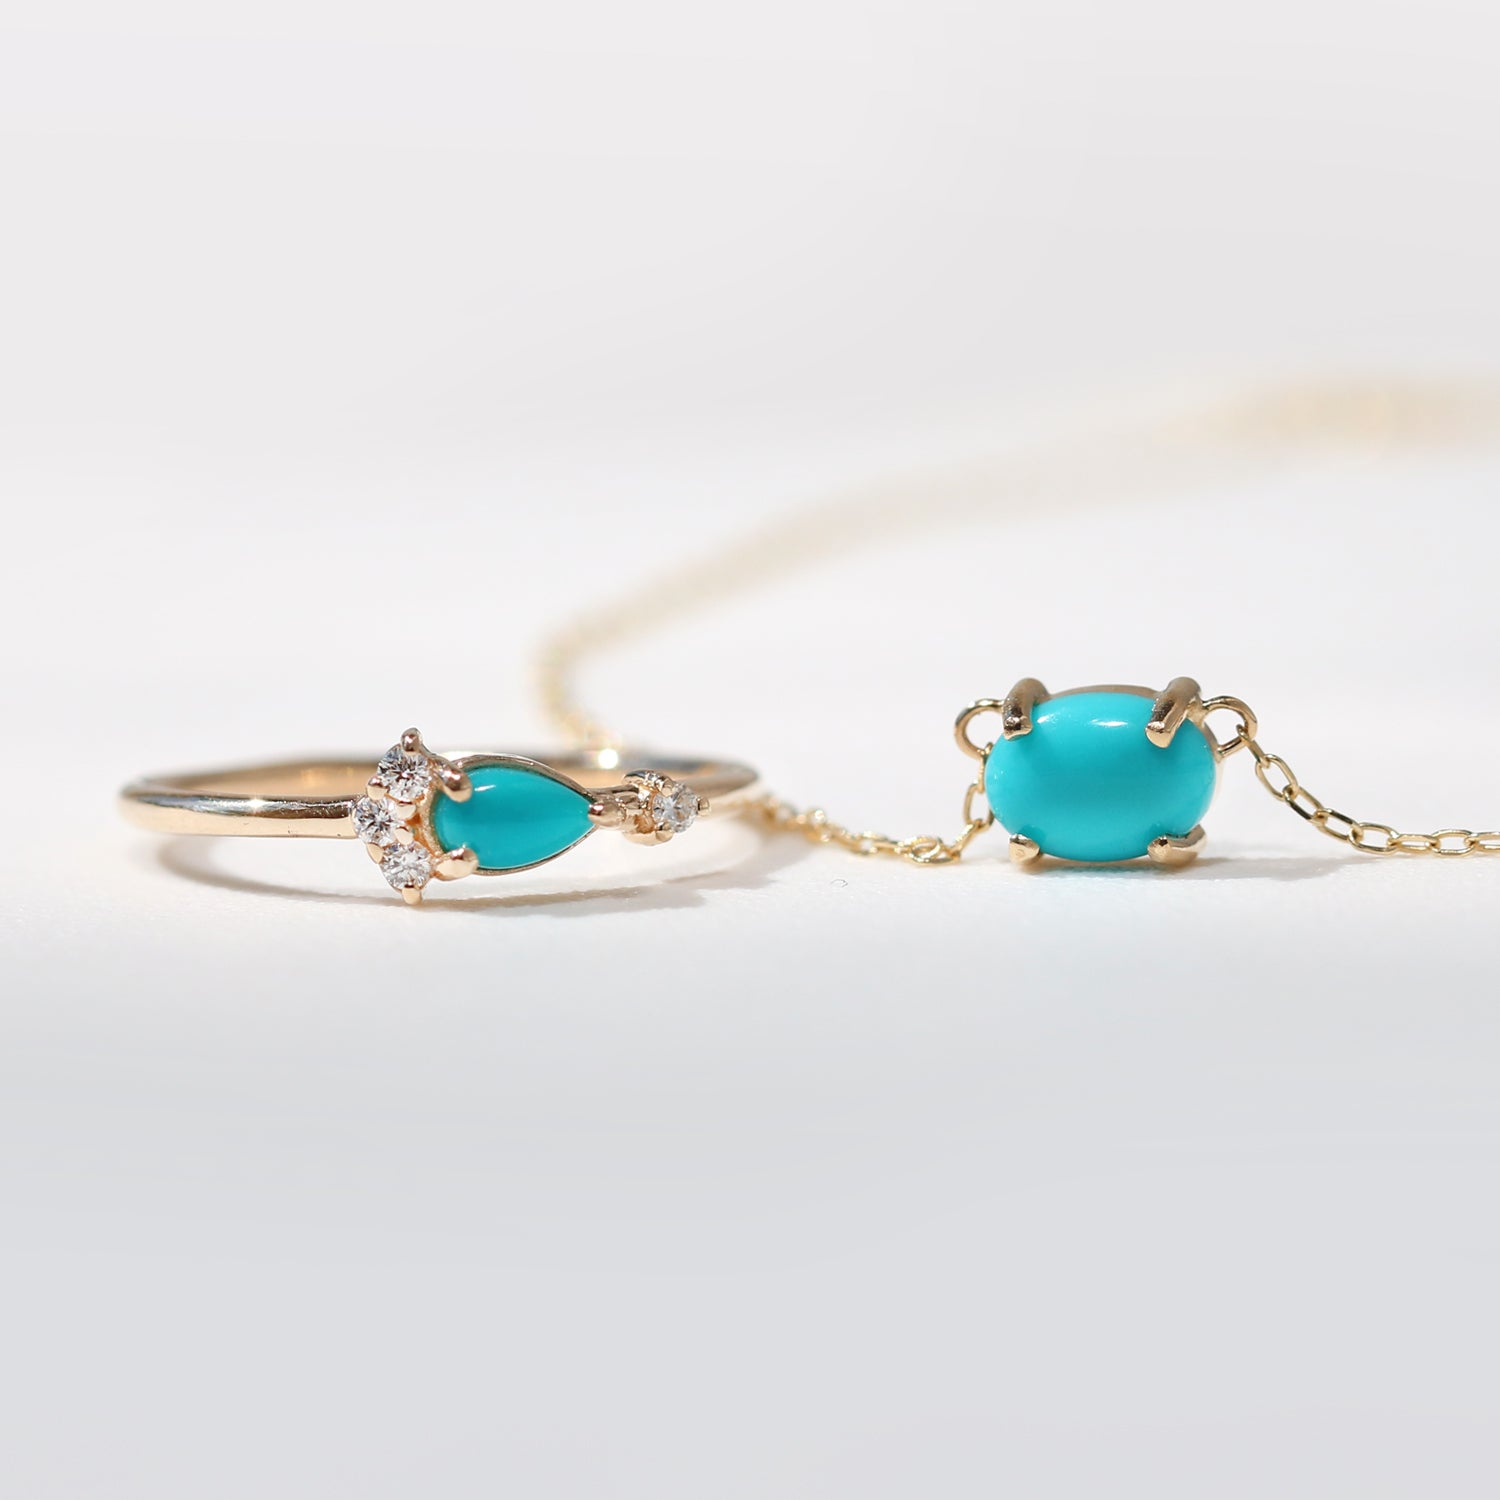 Turquoise Jewelry by Jamie Park Jewelry